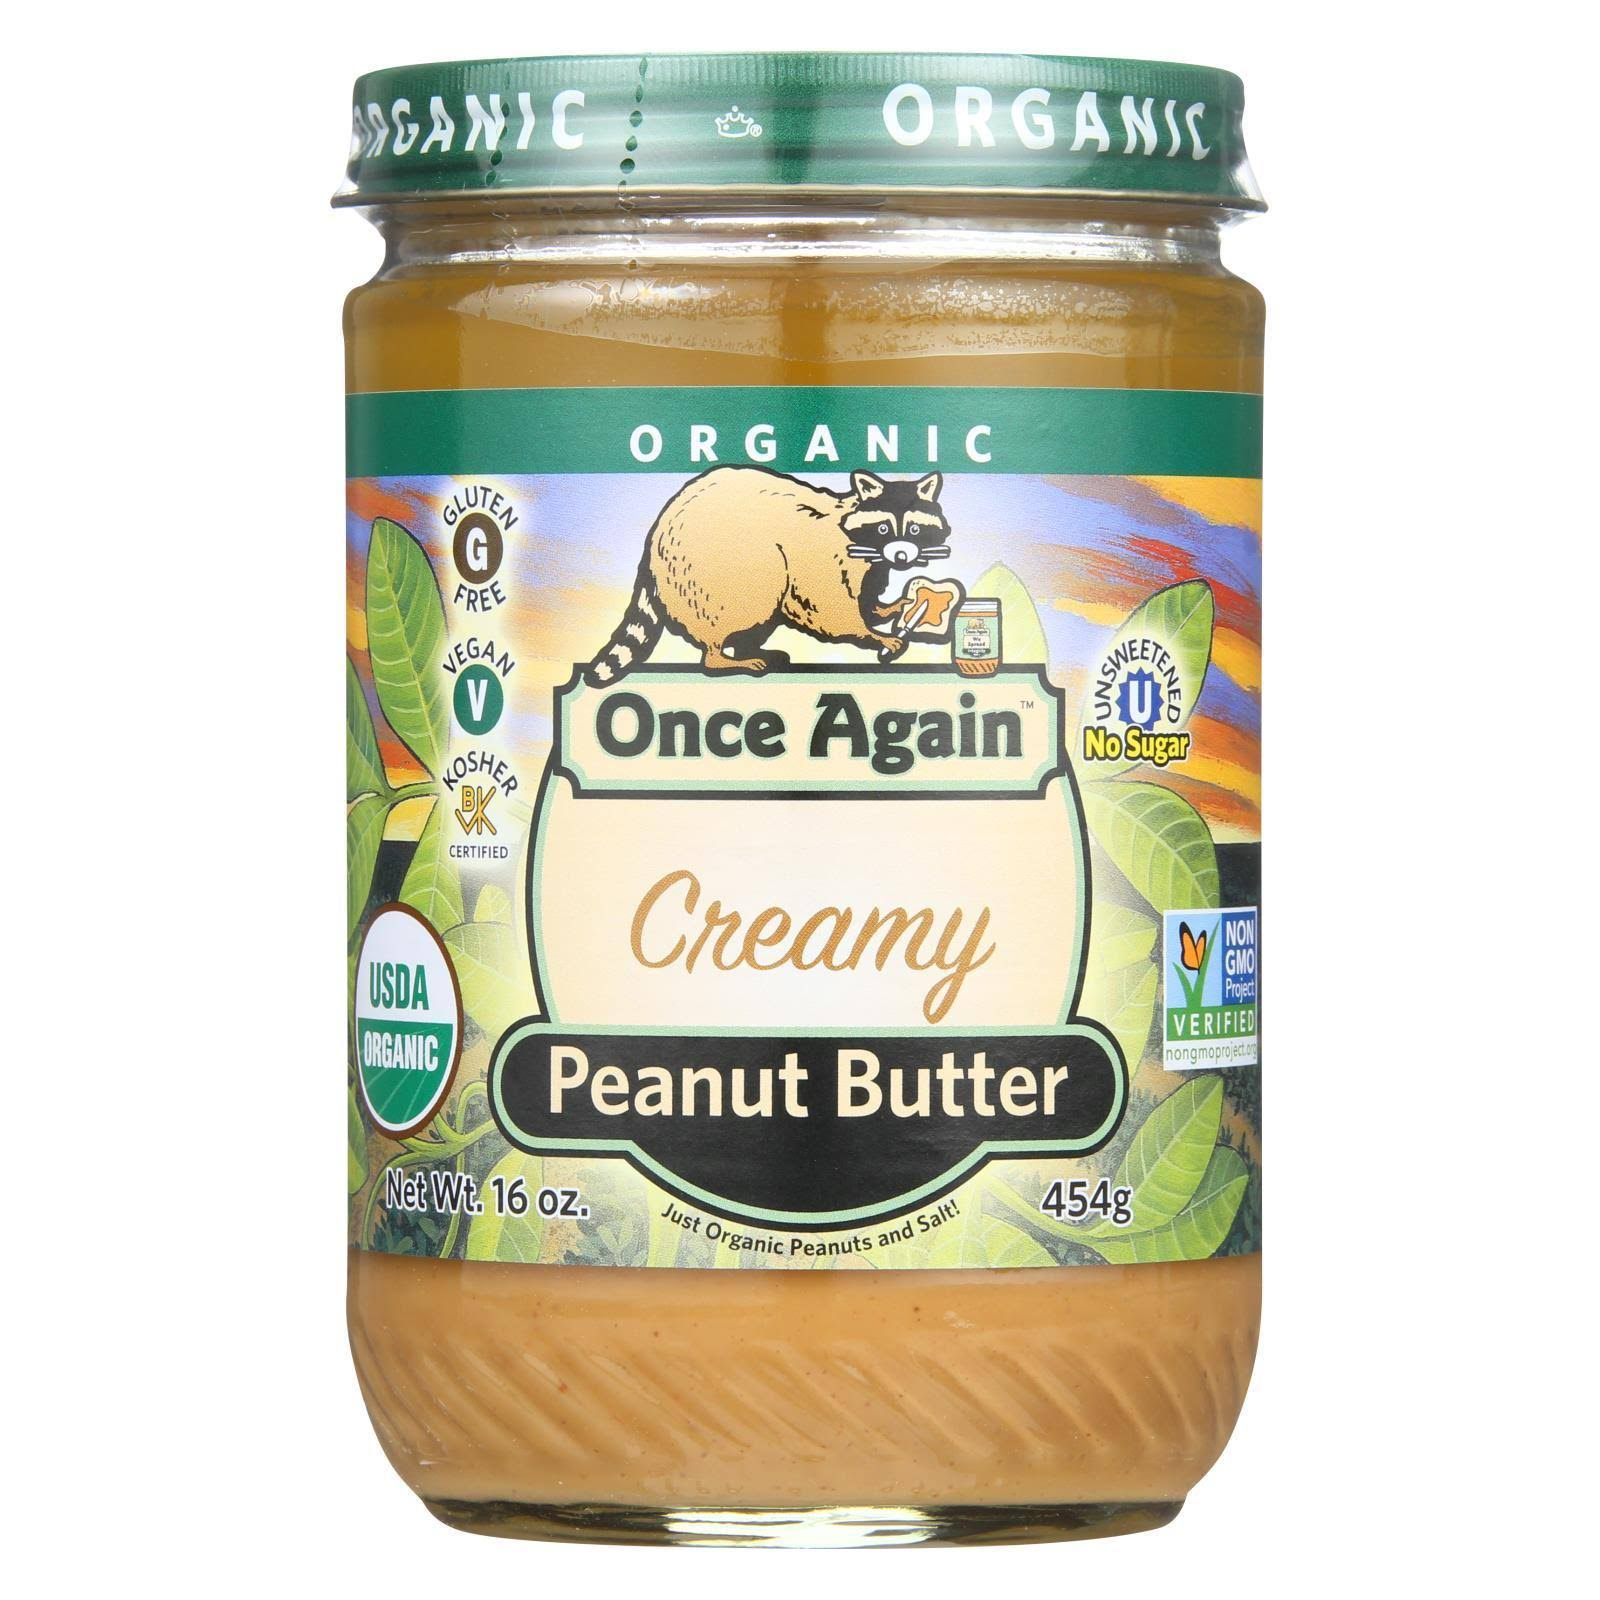 Once Again Peanut Butter, Creamy - 16 oz jar